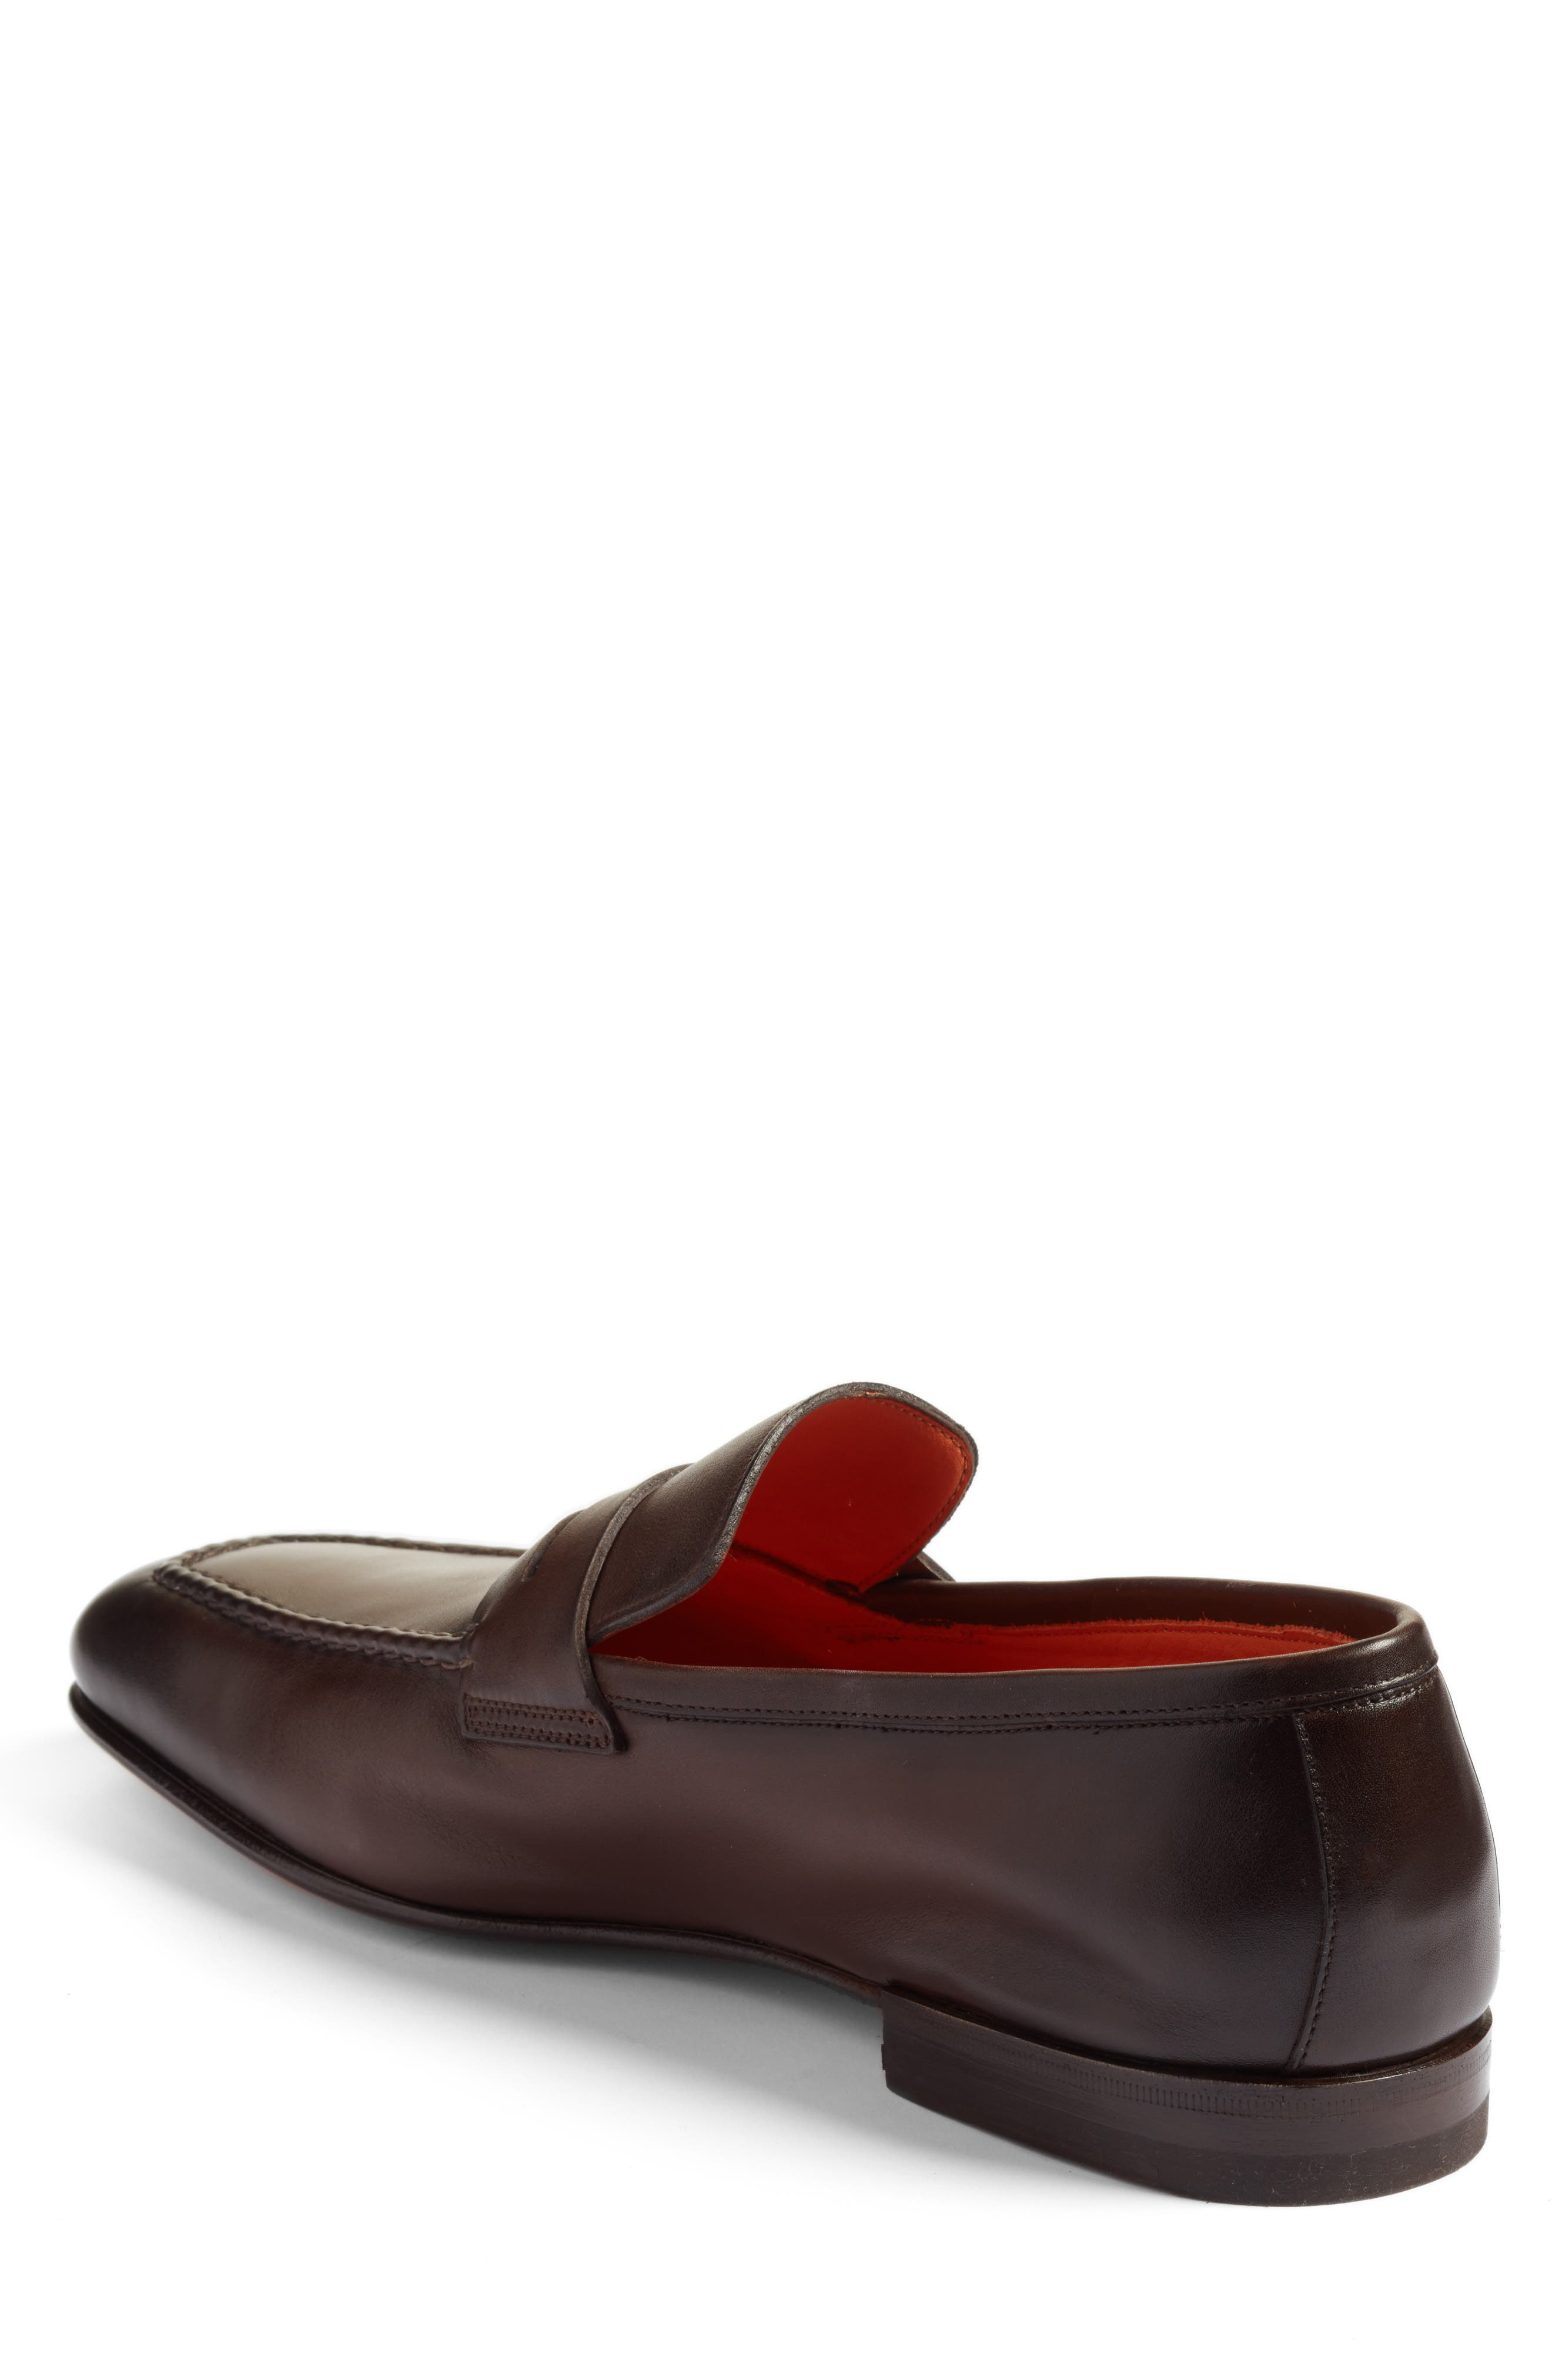 SANTONI, Fox Packable Penny Loafer, Alternate thumbnail 2, color, DARK BROWN LEATHER